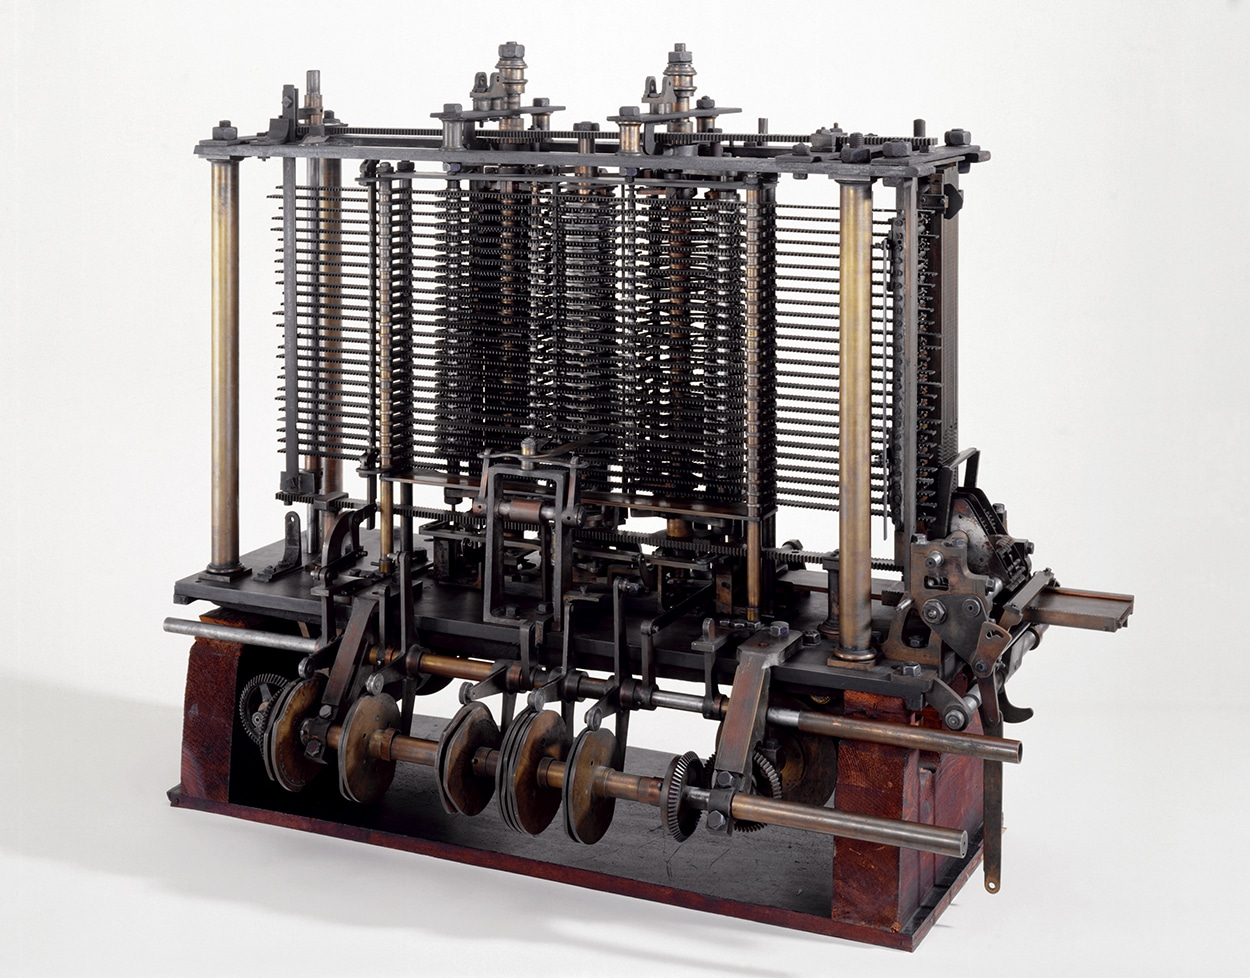 Lovelace's notes identified The Analytical Engine as the world's first general purpose computer.